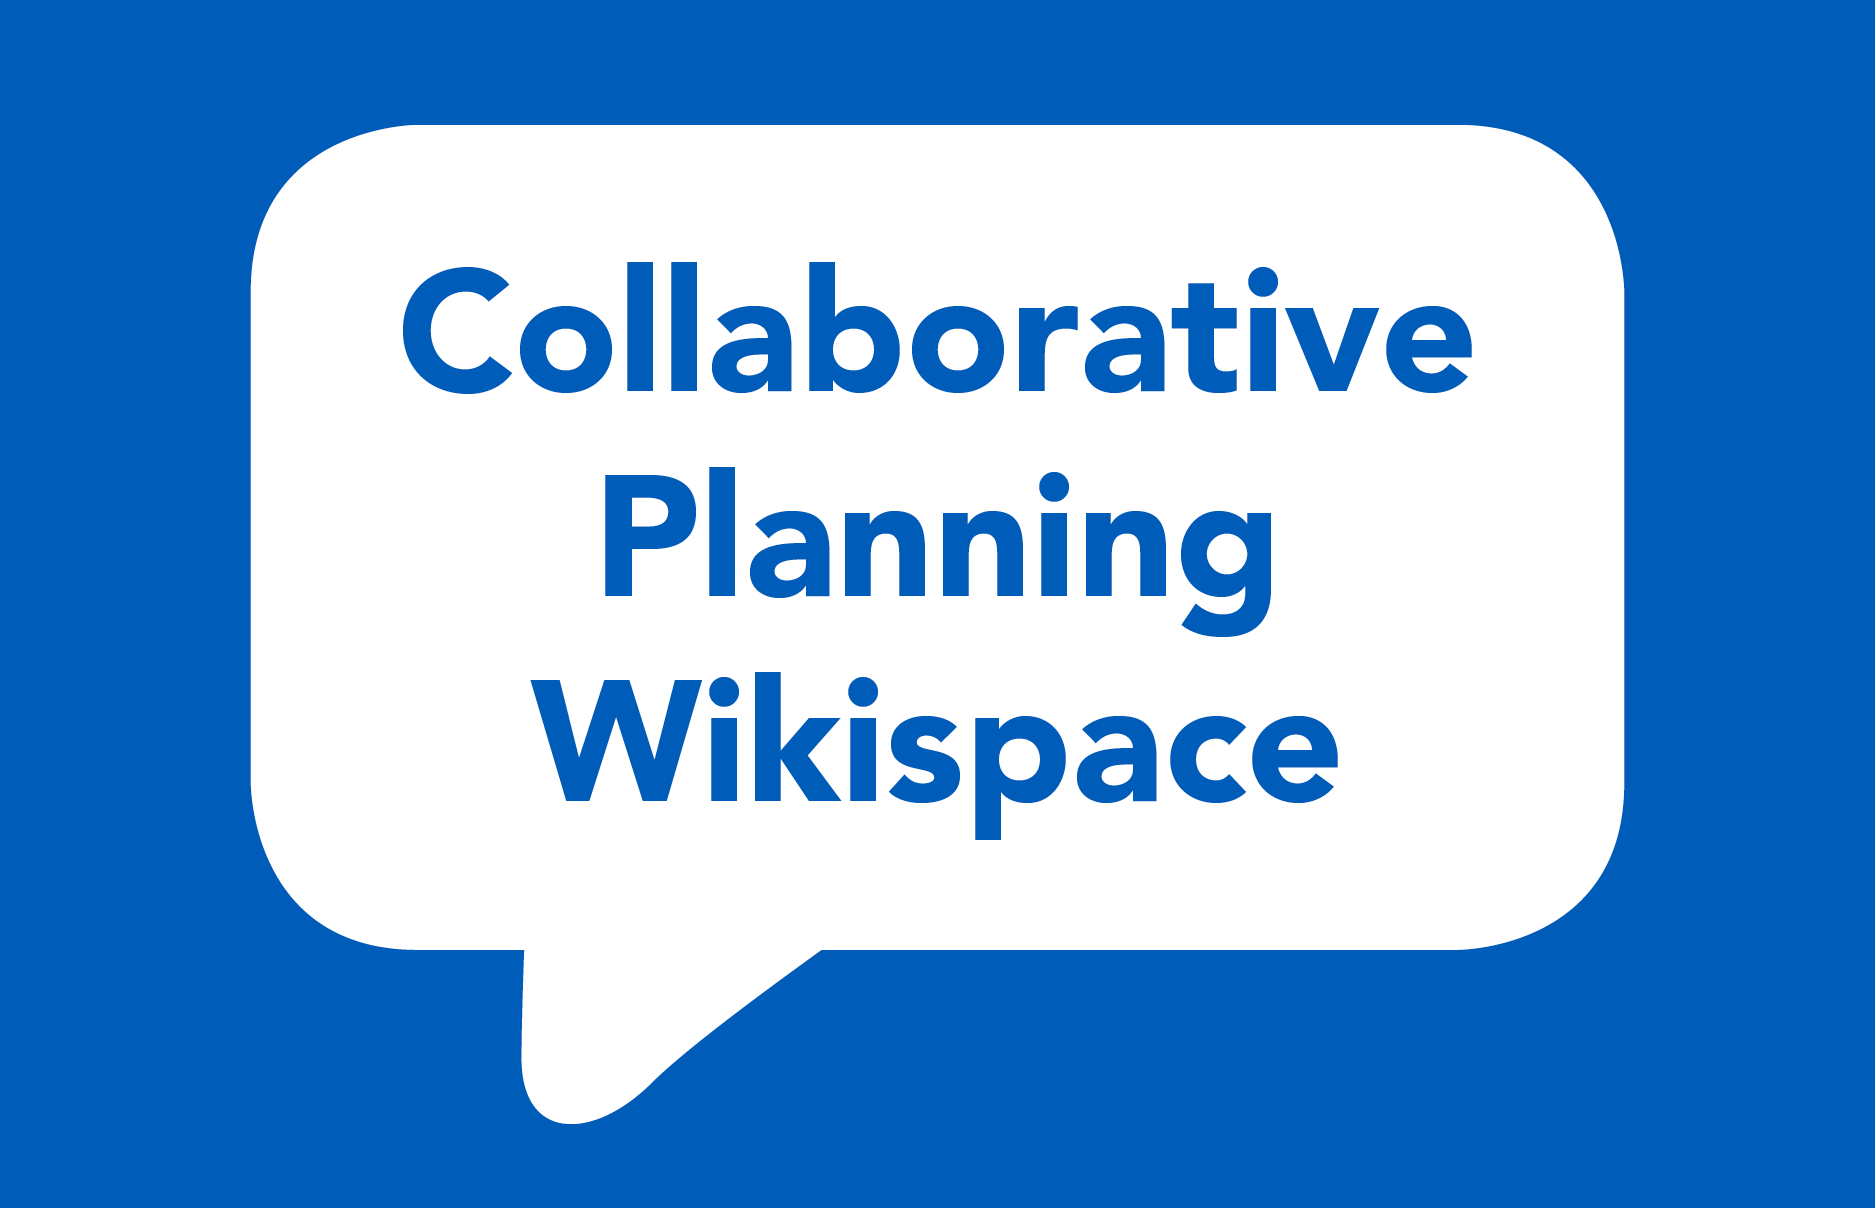 Collaborative Planning Wikispace